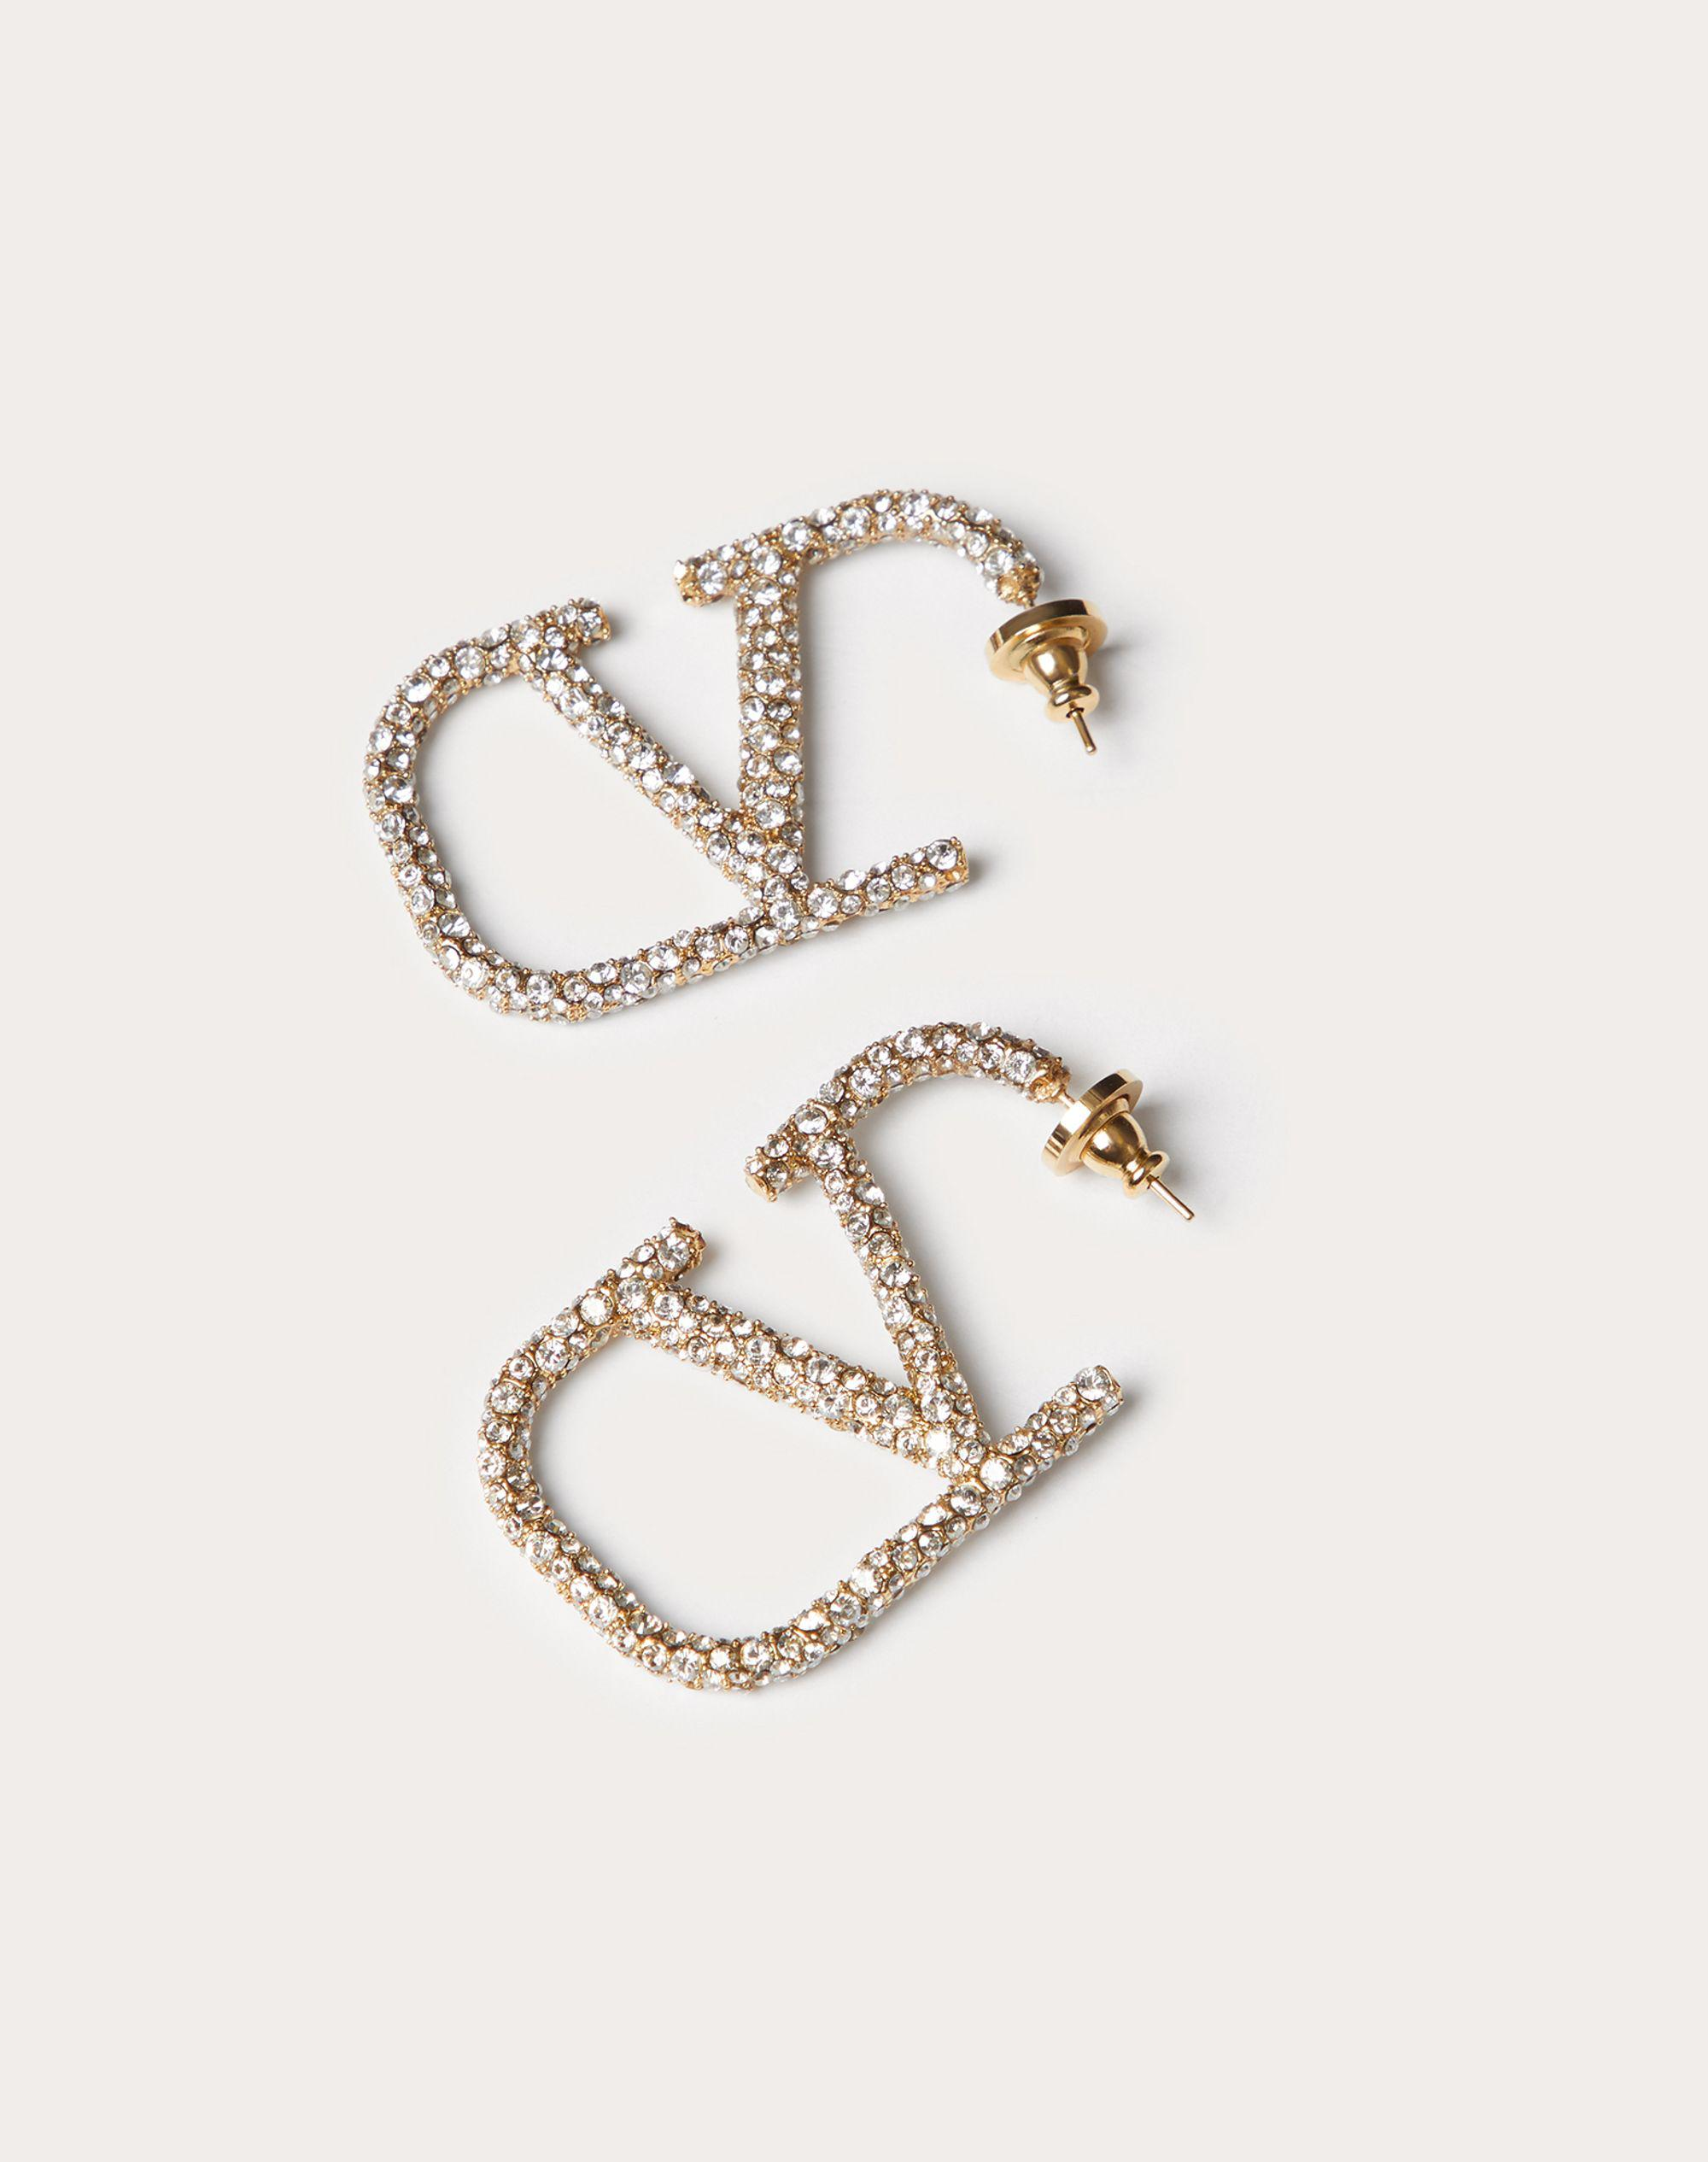 VLogo Signature earrings in metal and Swarovski® crystals.